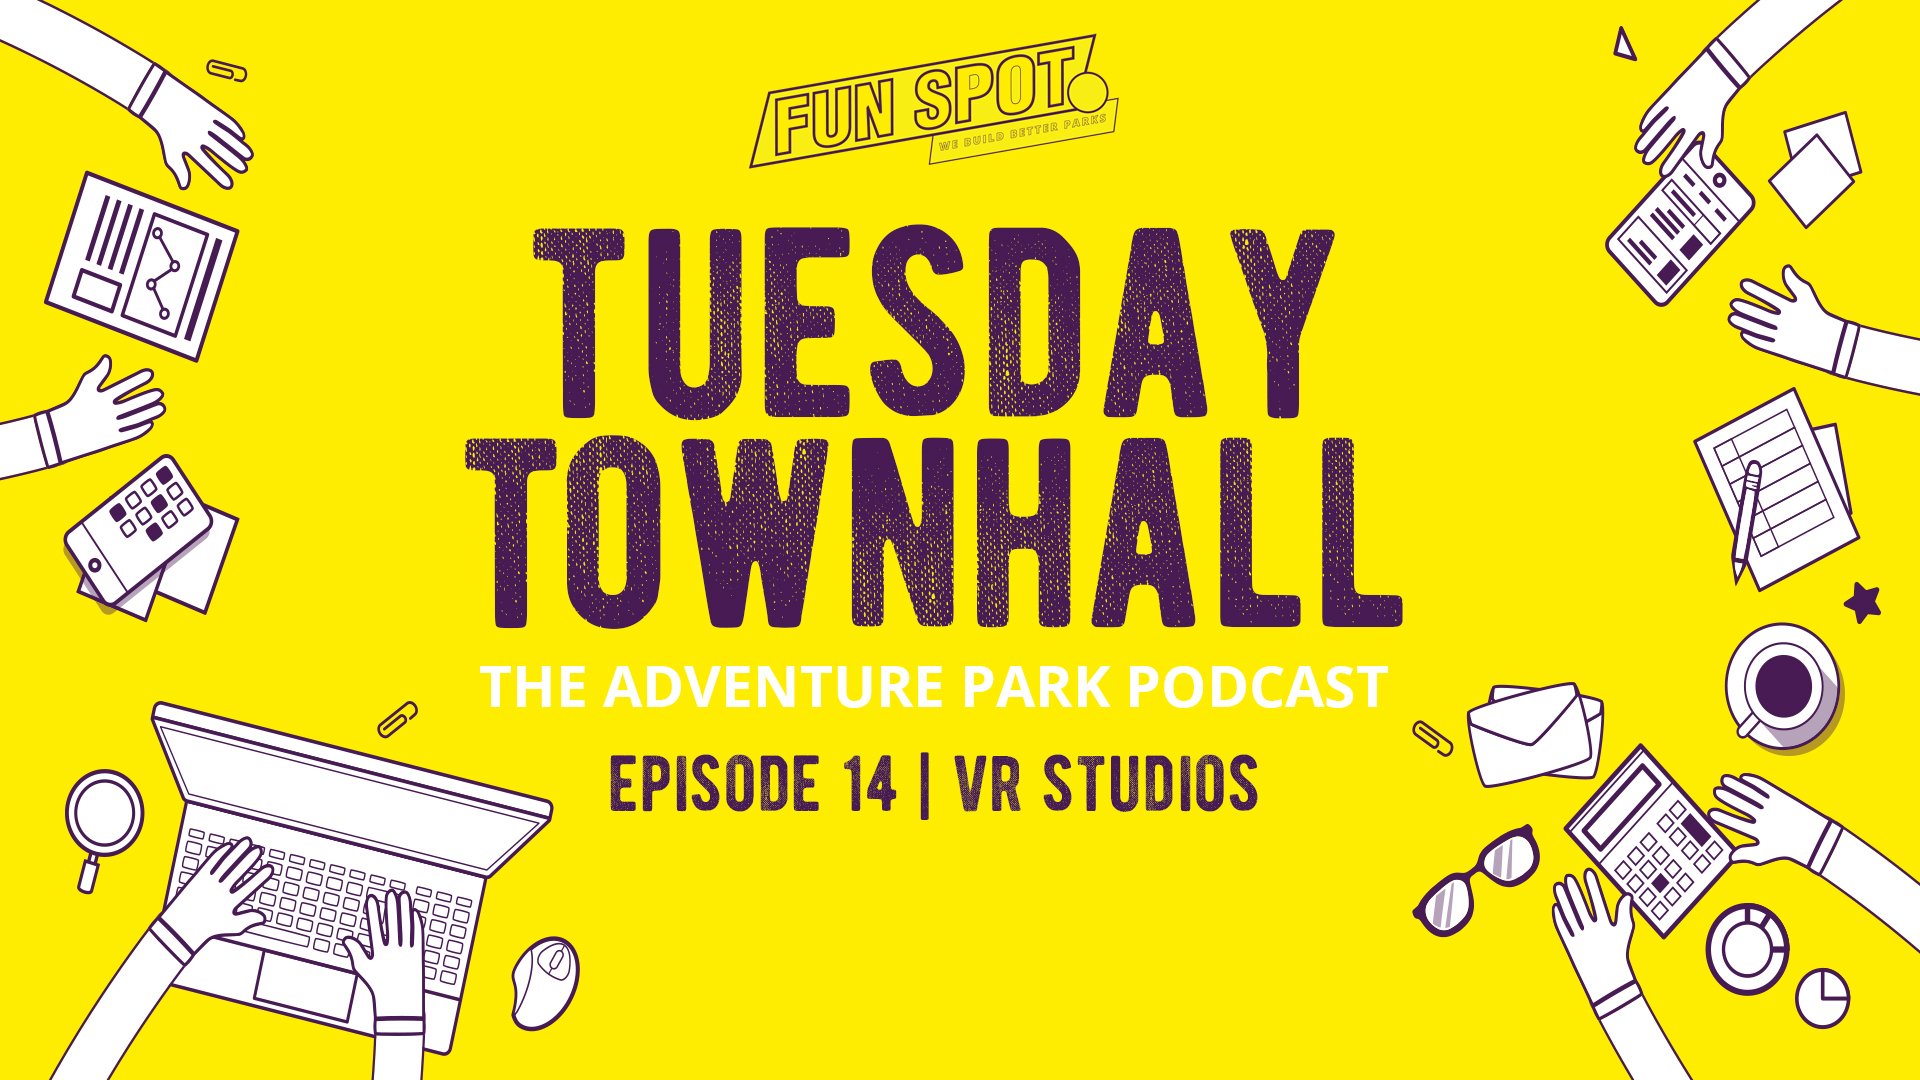 Tuesday Townhall Fun Spot Manufacturing adventure park trampoline park VR Studios